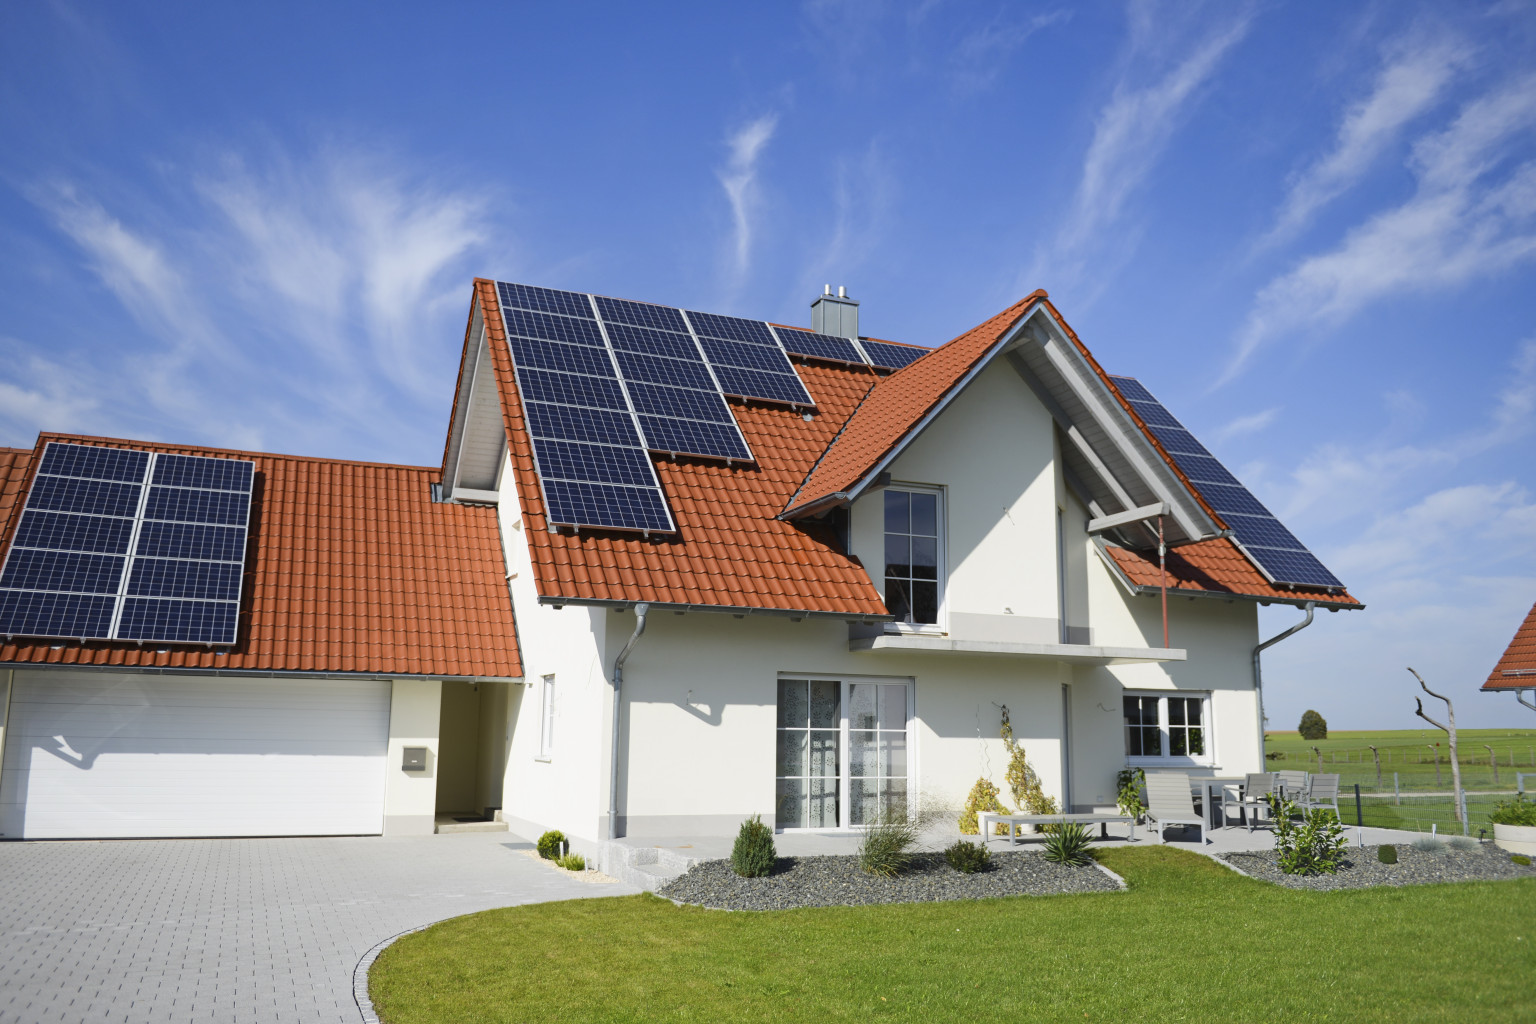 Buying a House with Fully Owned Solar Panels, buying a house with fully owned solar panels uk, what happens if i buy a house with solar panels, should i buy a house with solar panels, should i buy a house with solar panels uk, what happened when i bought a house with solar panels, what happens if you buy a house with solar panels, what happens if you buy a house with leased solar panels, is it worth buying a house with solar panels, should you buy a house with solar panels, should i buy a house with leased solar panels, i bought a house with solar panels, buy a house with solar panels, buying a house with solar panels uk, bought a house with solar panels tax credit, buying a house with solar panels installed, buying a house with solar panels qld, buying a house with solar panels already installed, does installing solar panels increase home value, is there a tax credit for buying solar panels, do you get a tax credit for having solar panels, what is the tax credit for installing solar panels, can i get a tax credit for solar panels, should i buy solar panels for my house, is it worth getting solar panels for your home, does it make sense to buy solar panels, im buying a house with solar panels,